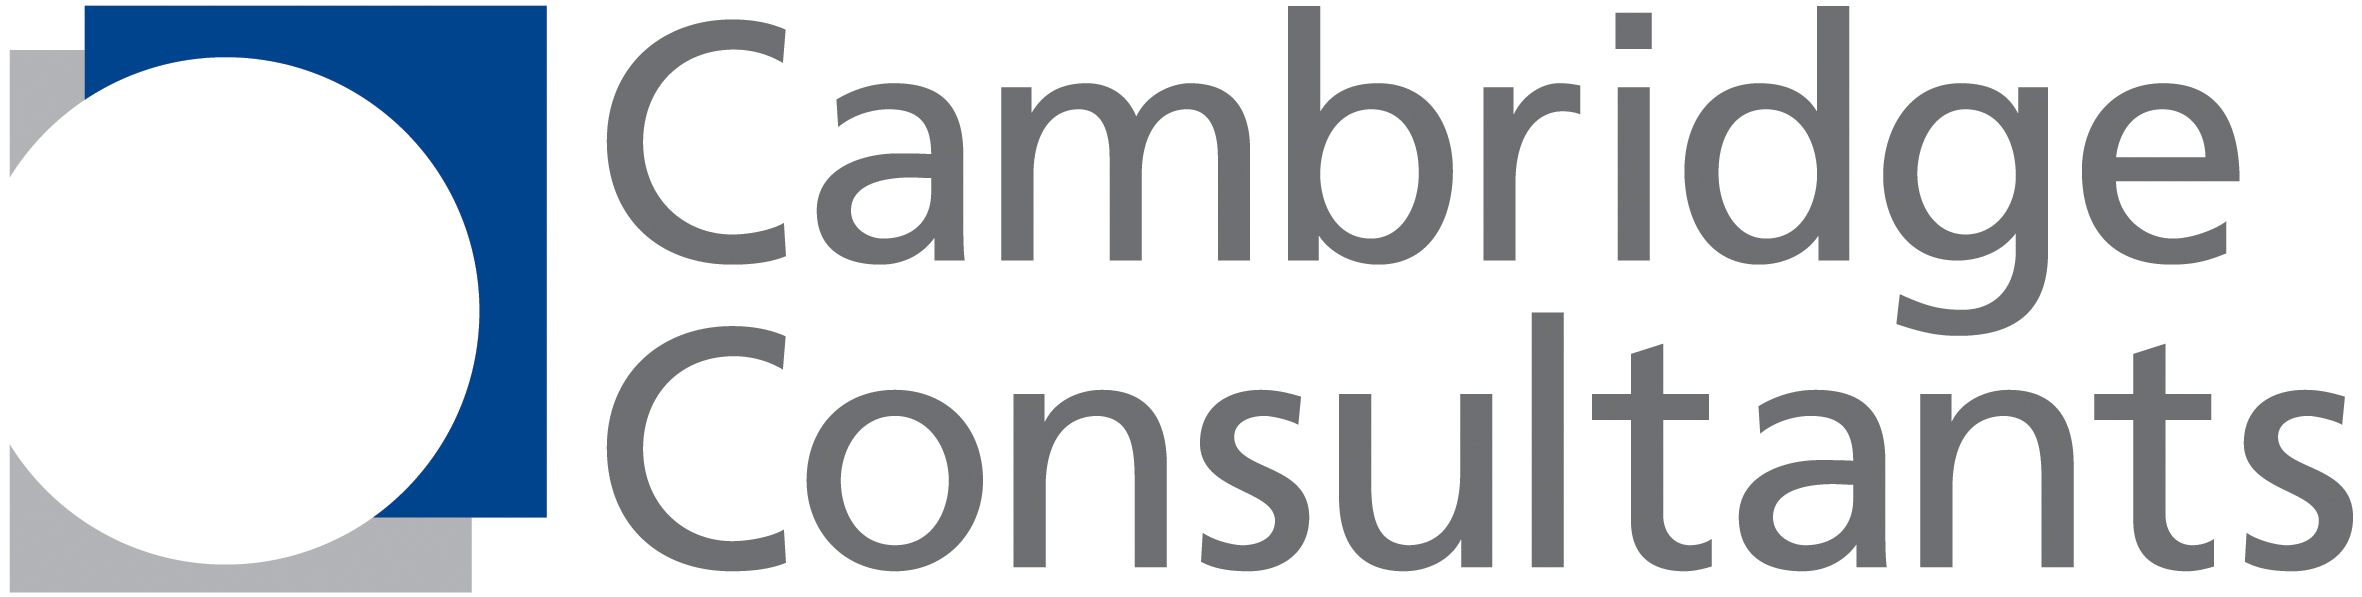 http://www.cambridgeconsultants.com